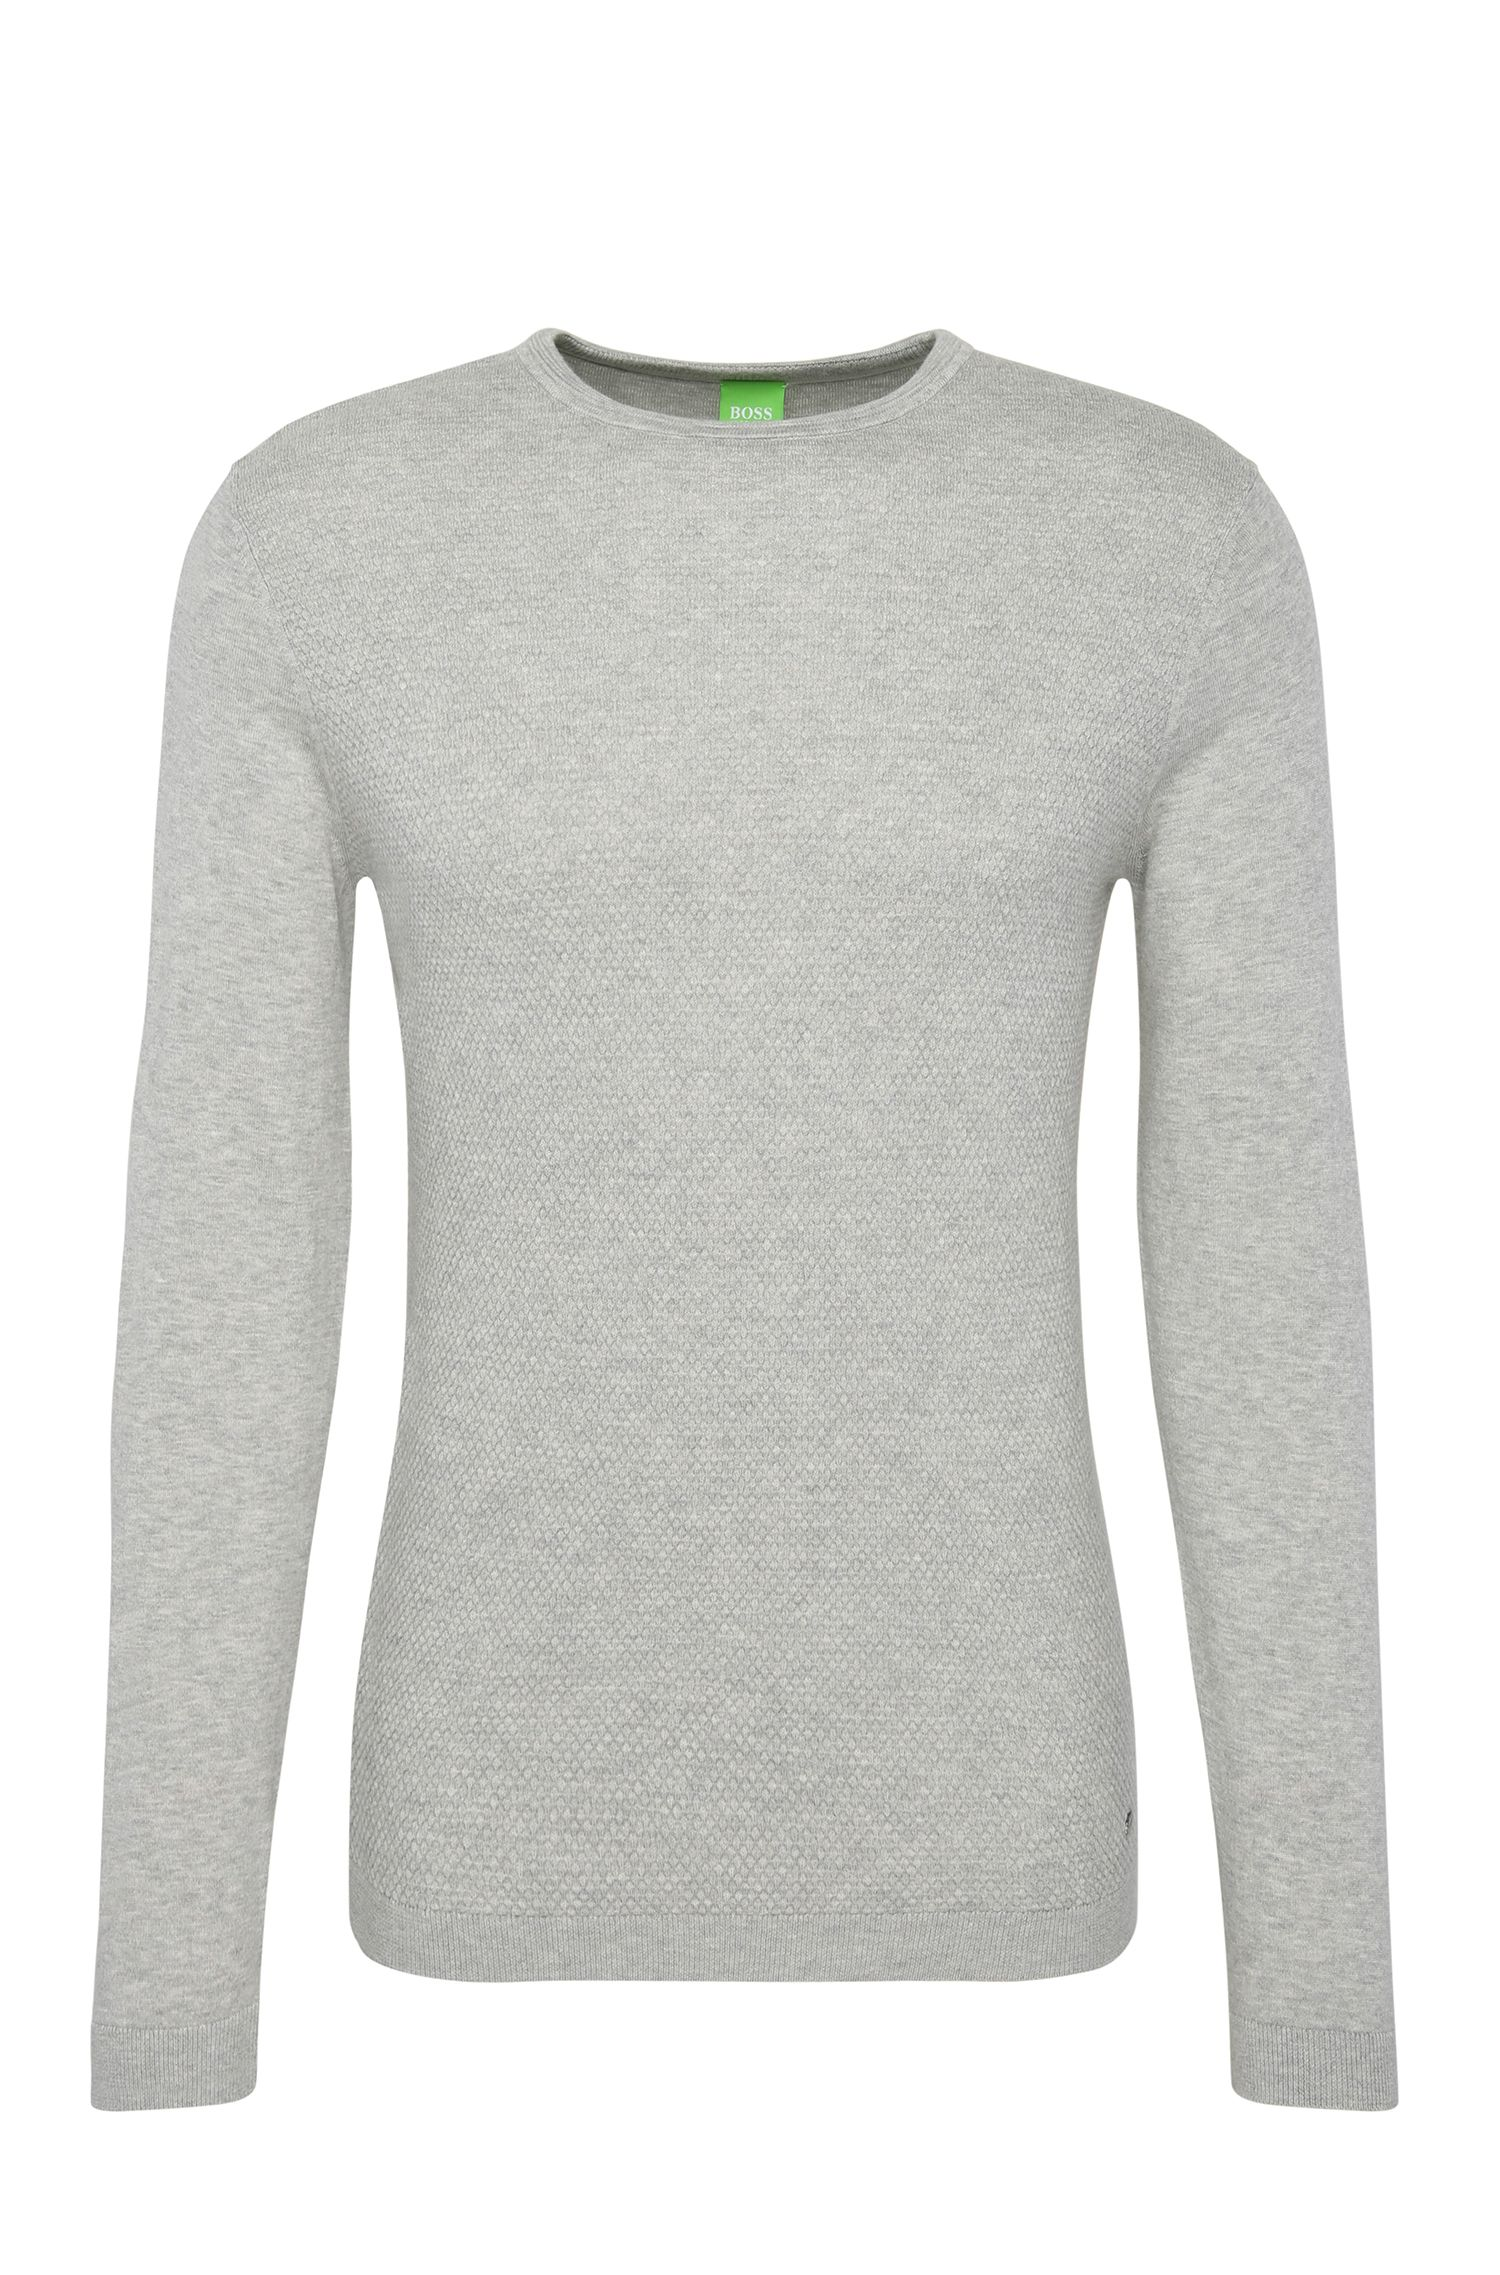 Regular-fit knit sweater in cotton blended with wool: 'Ritt'